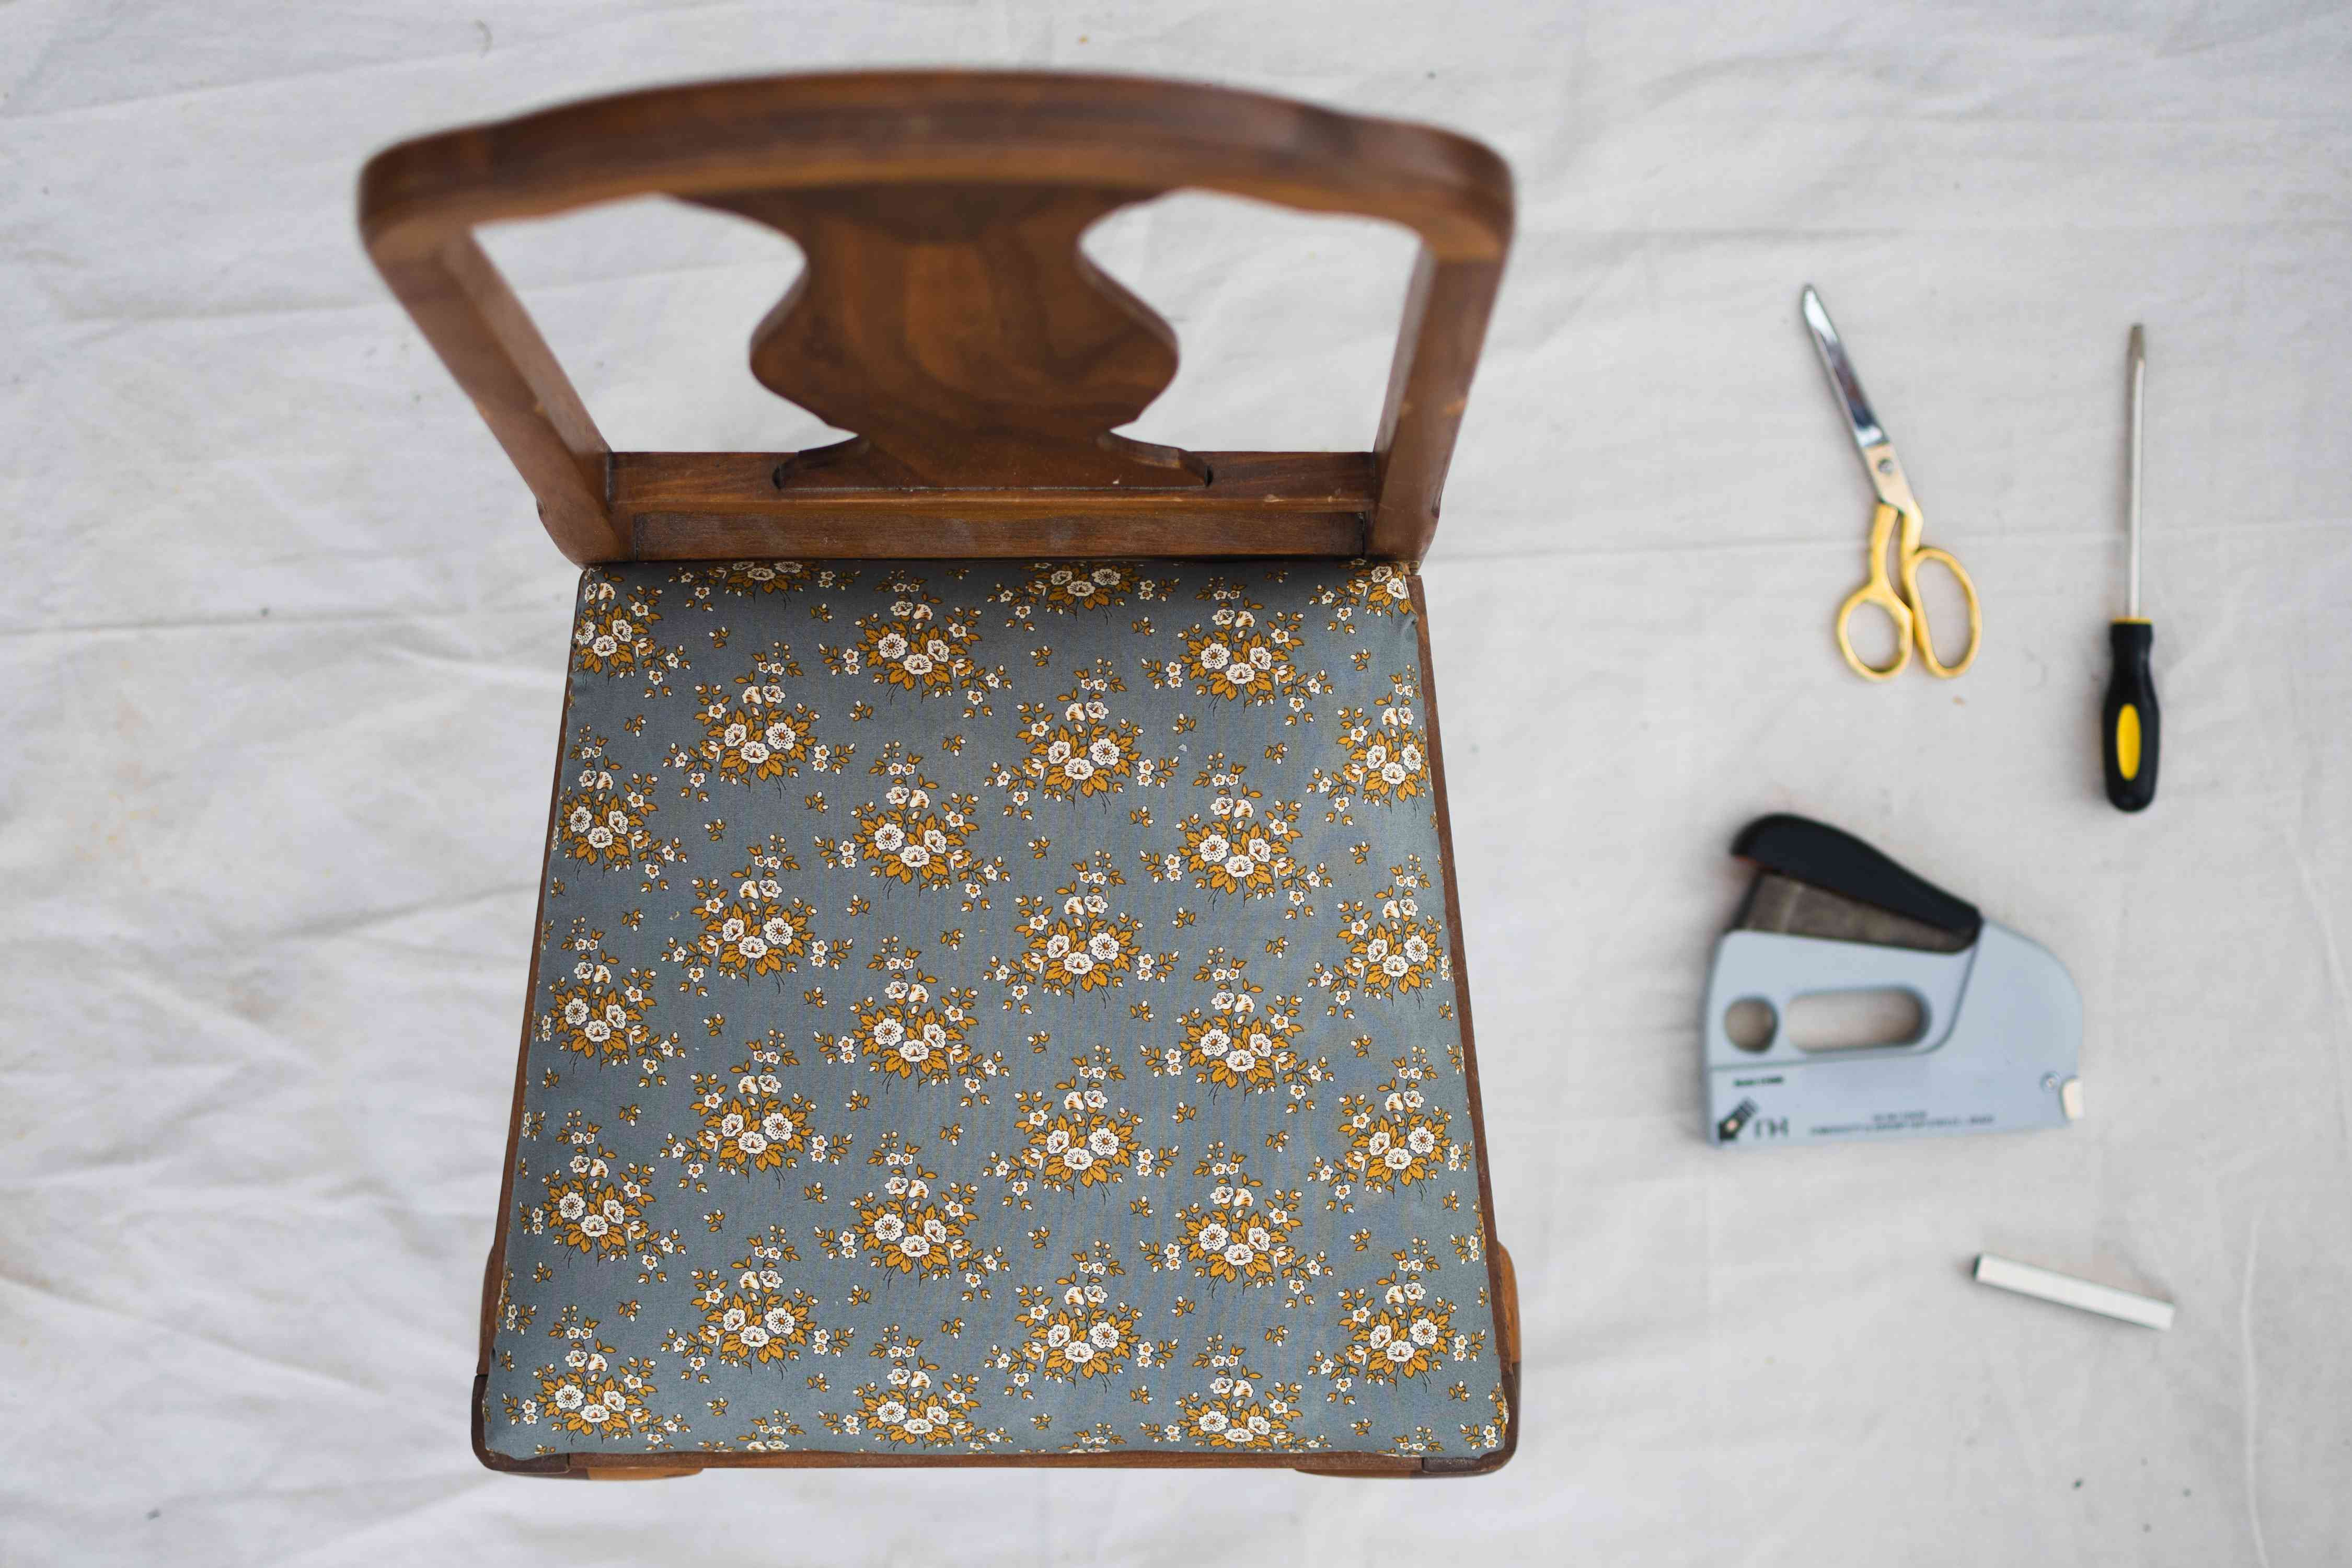 Chair seat reattached to wooden chair with new upholstered fabric next to materials and tools